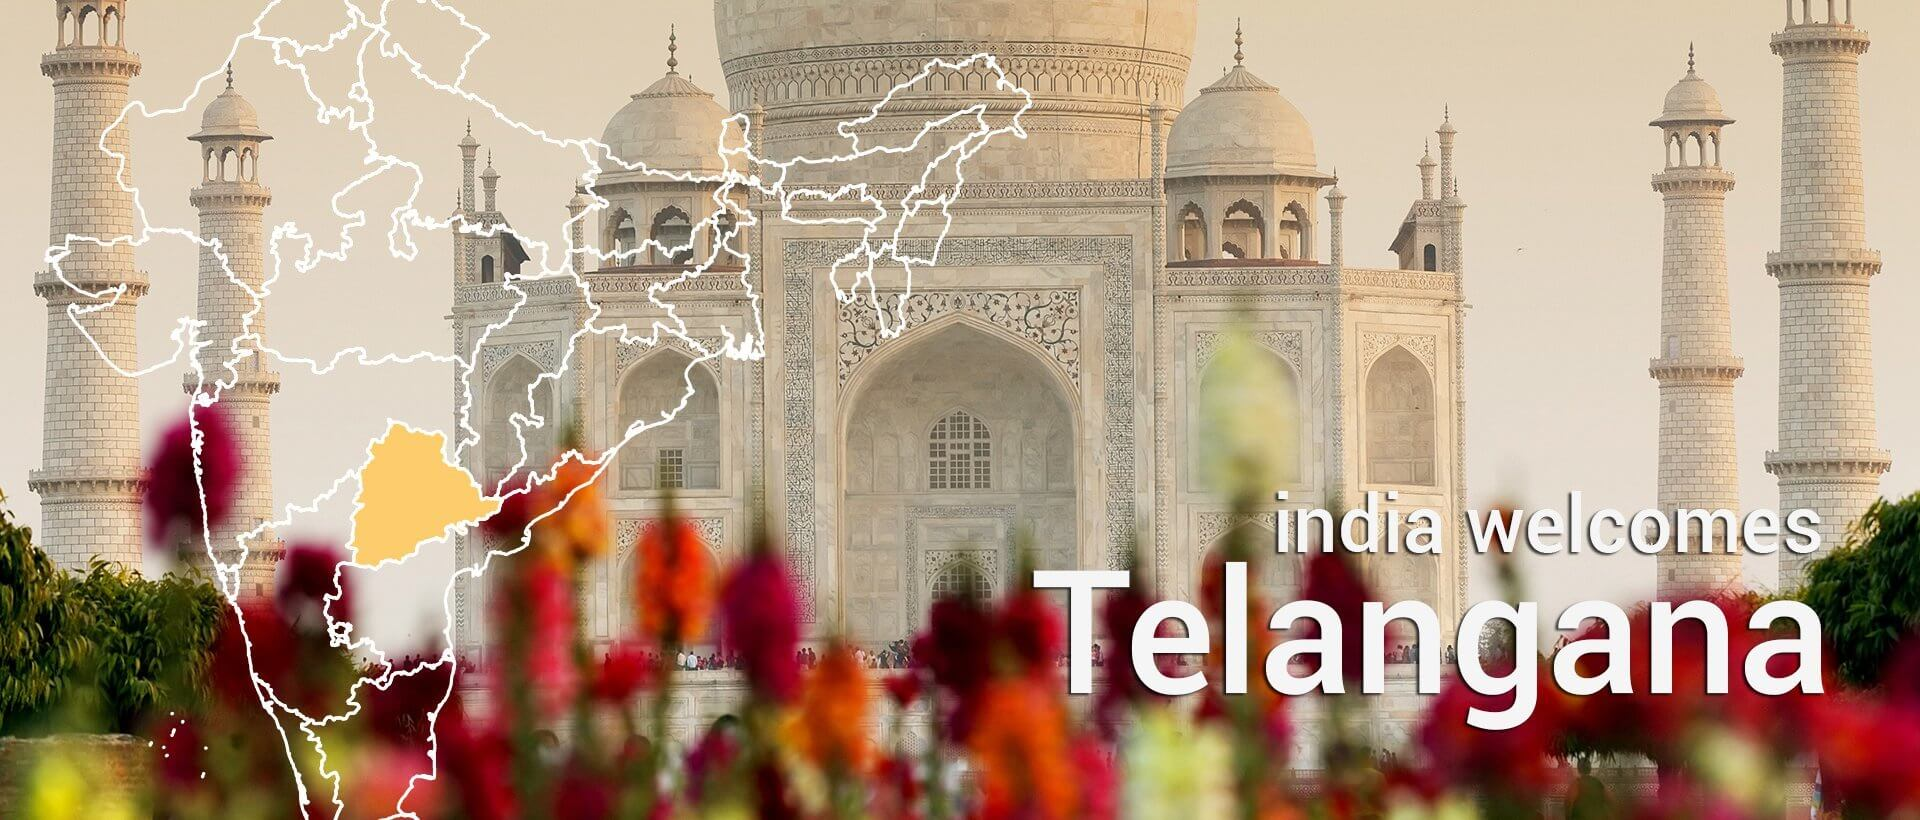 Telangana new state in India